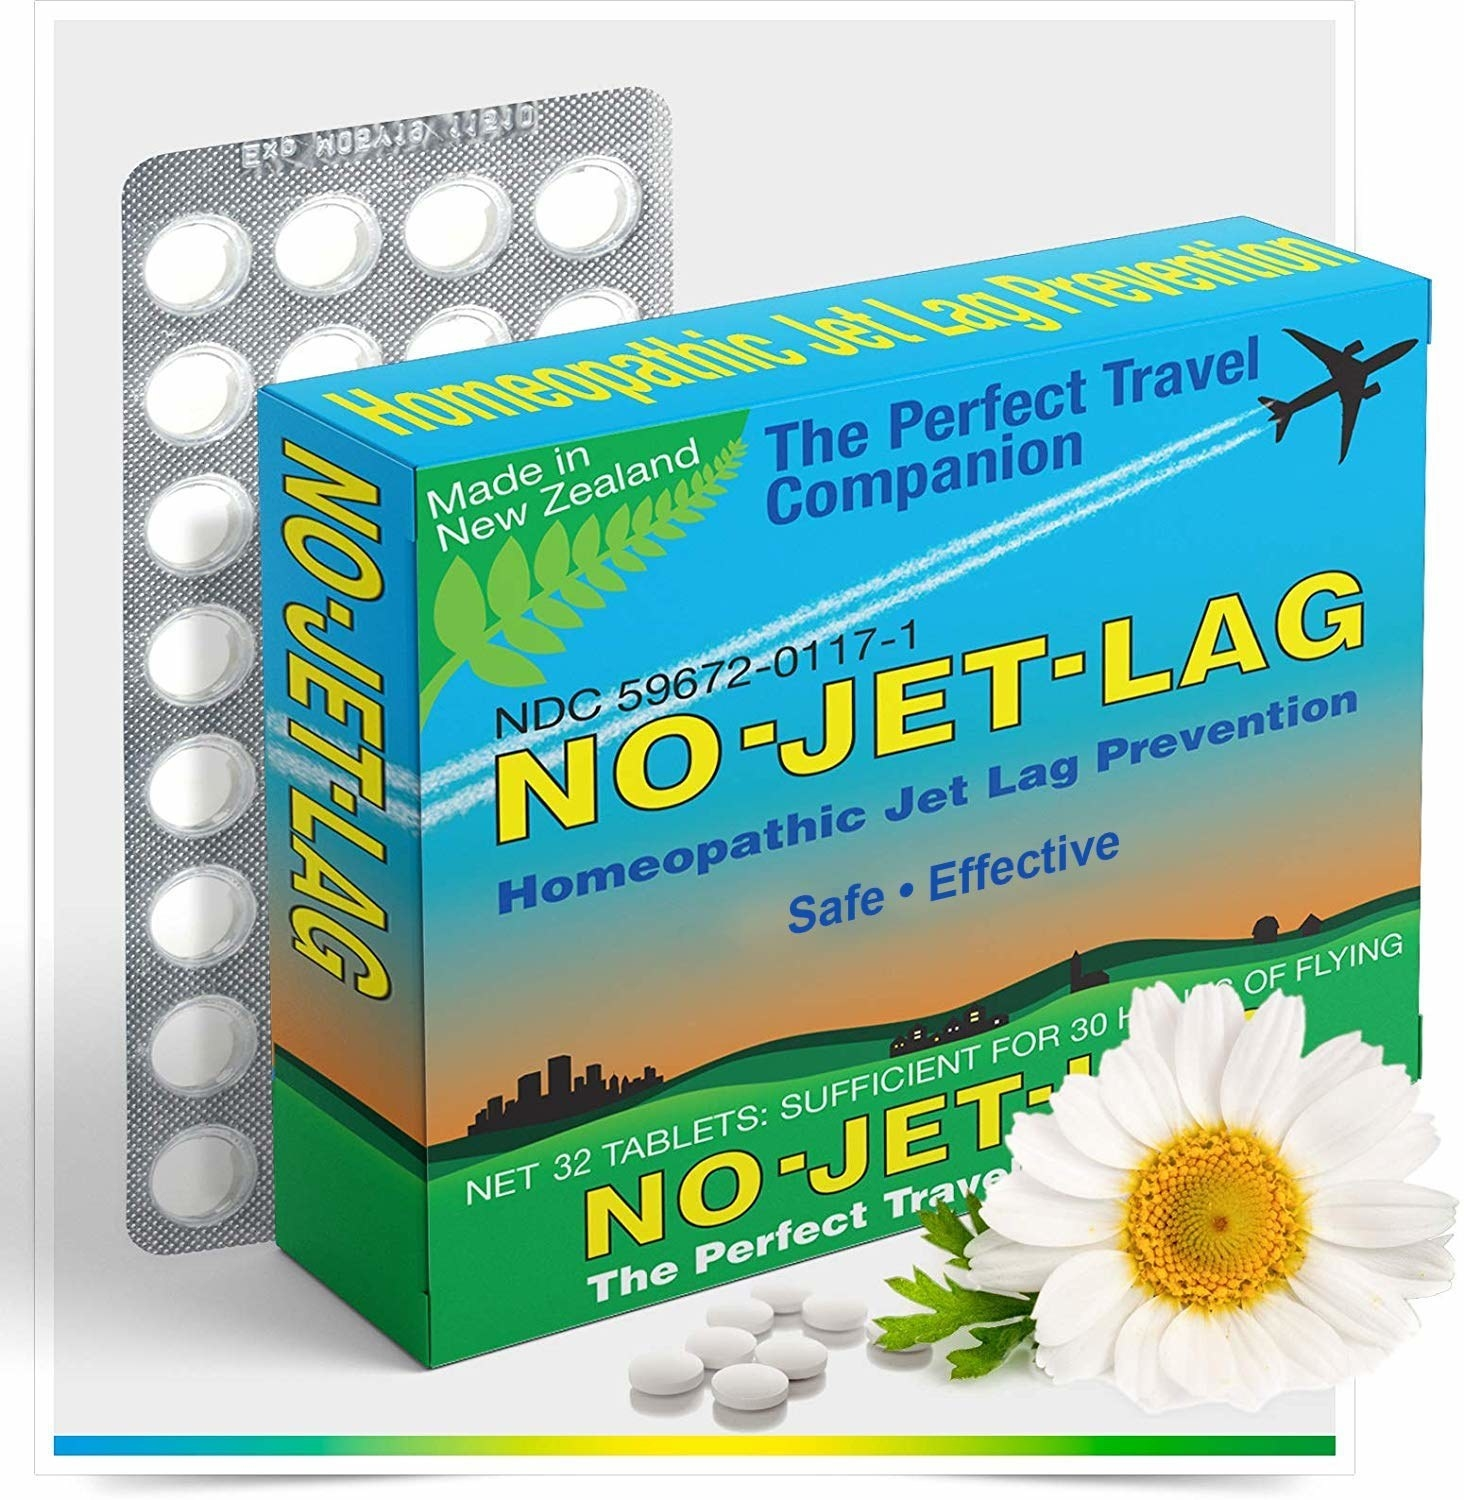 The box ofMiers Labs No Jet Lag Homeopathic Jet Lag Remedy